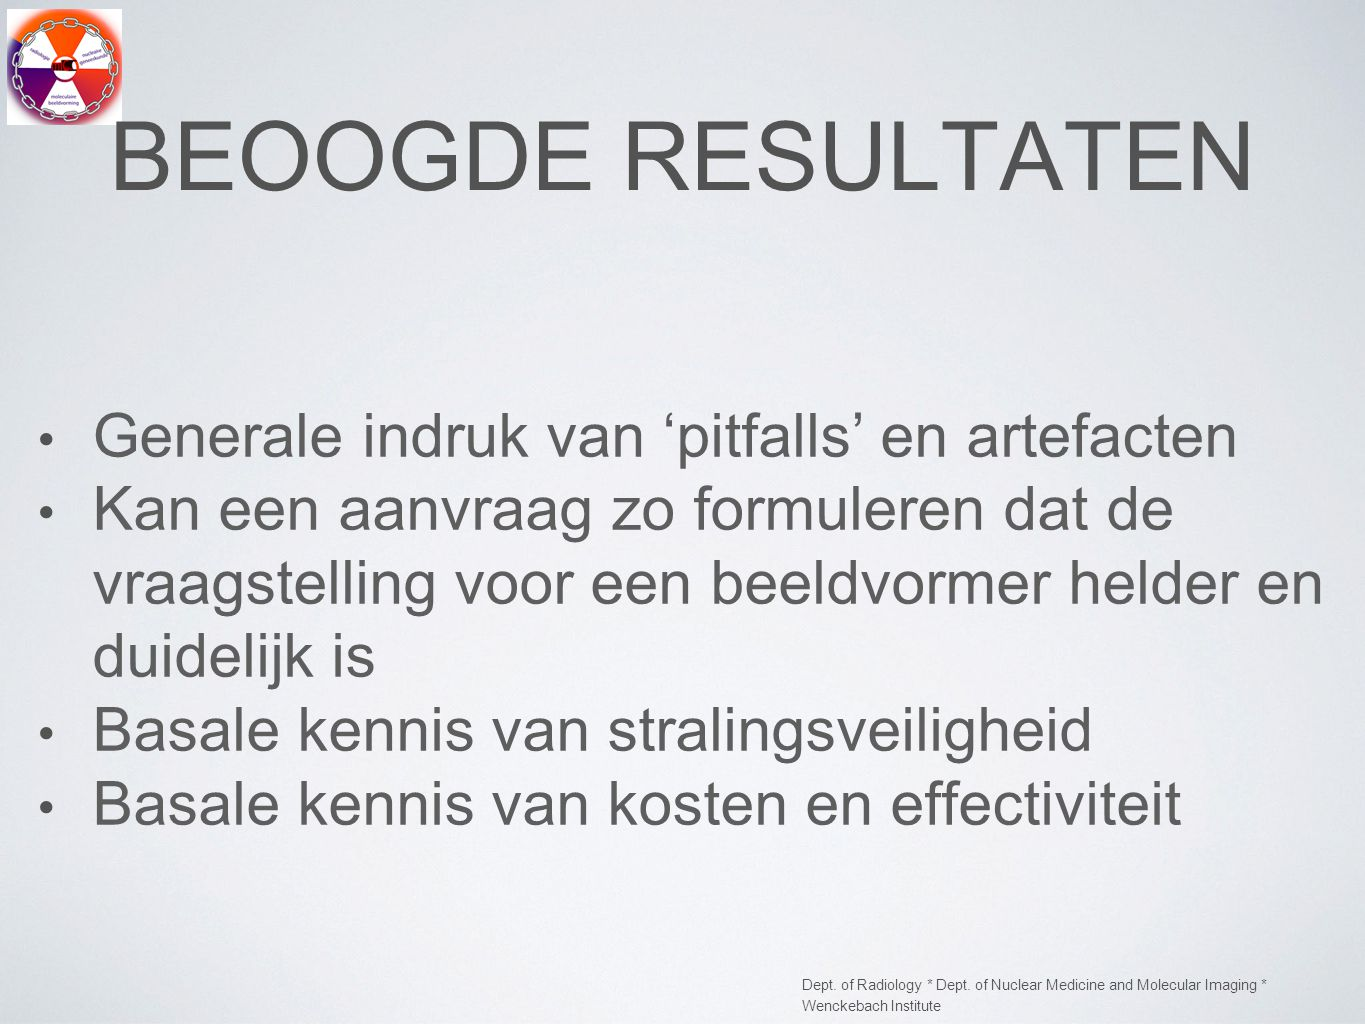 Dept. of Radiology * Dept. of Nuclear Medicine and Molecular Imaging * Wenckebach Institute BEOOGDE RESULTATEN Generale indruk van 'pitfalls' en artef